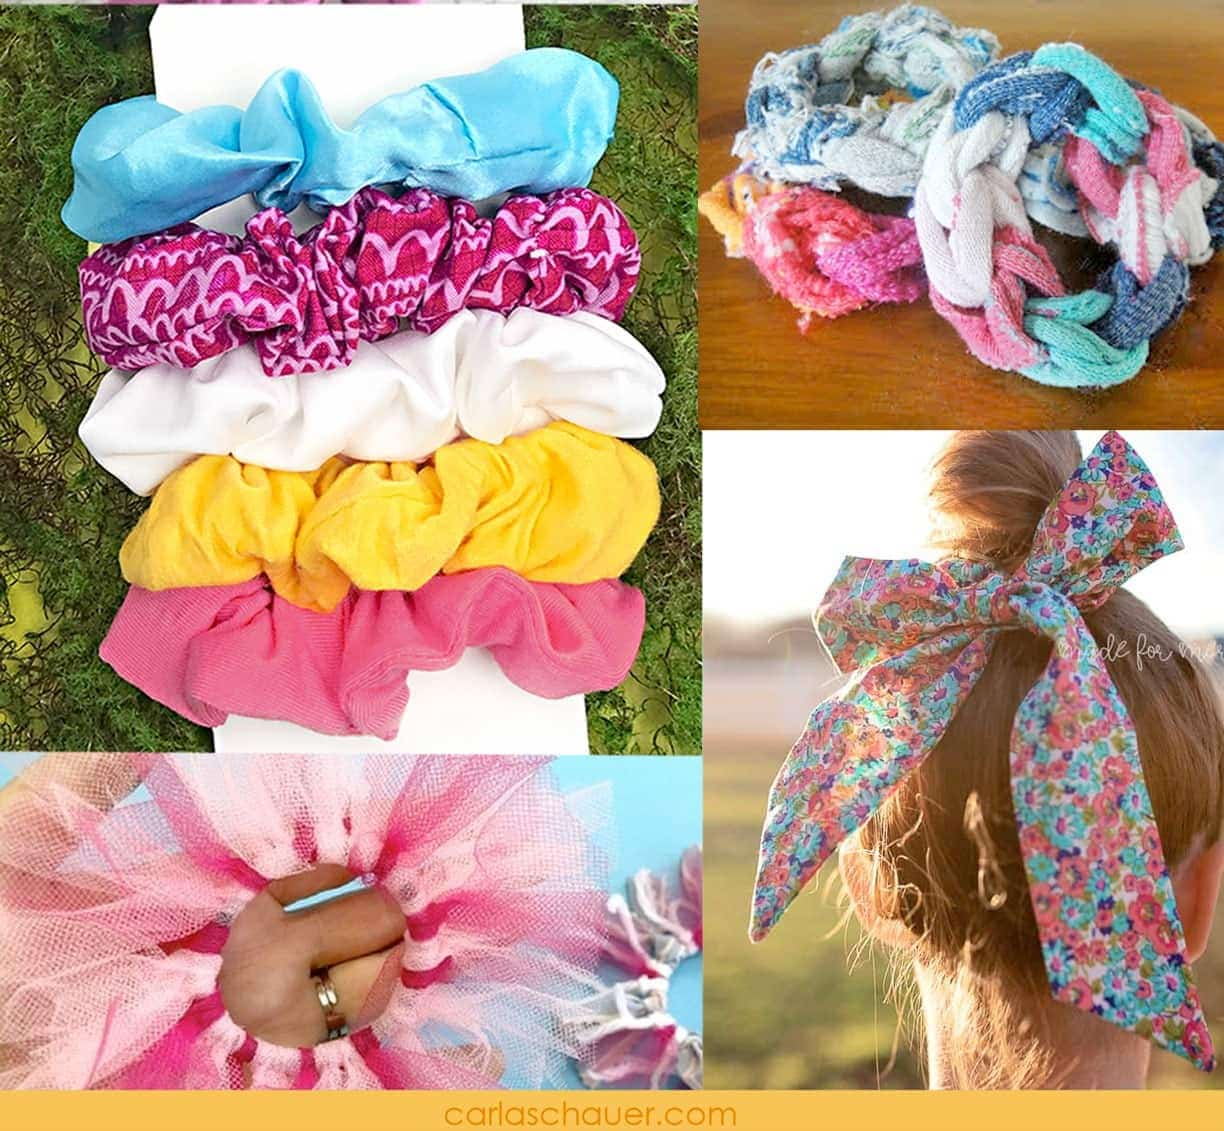 diy scrunchie tutorial photo collage